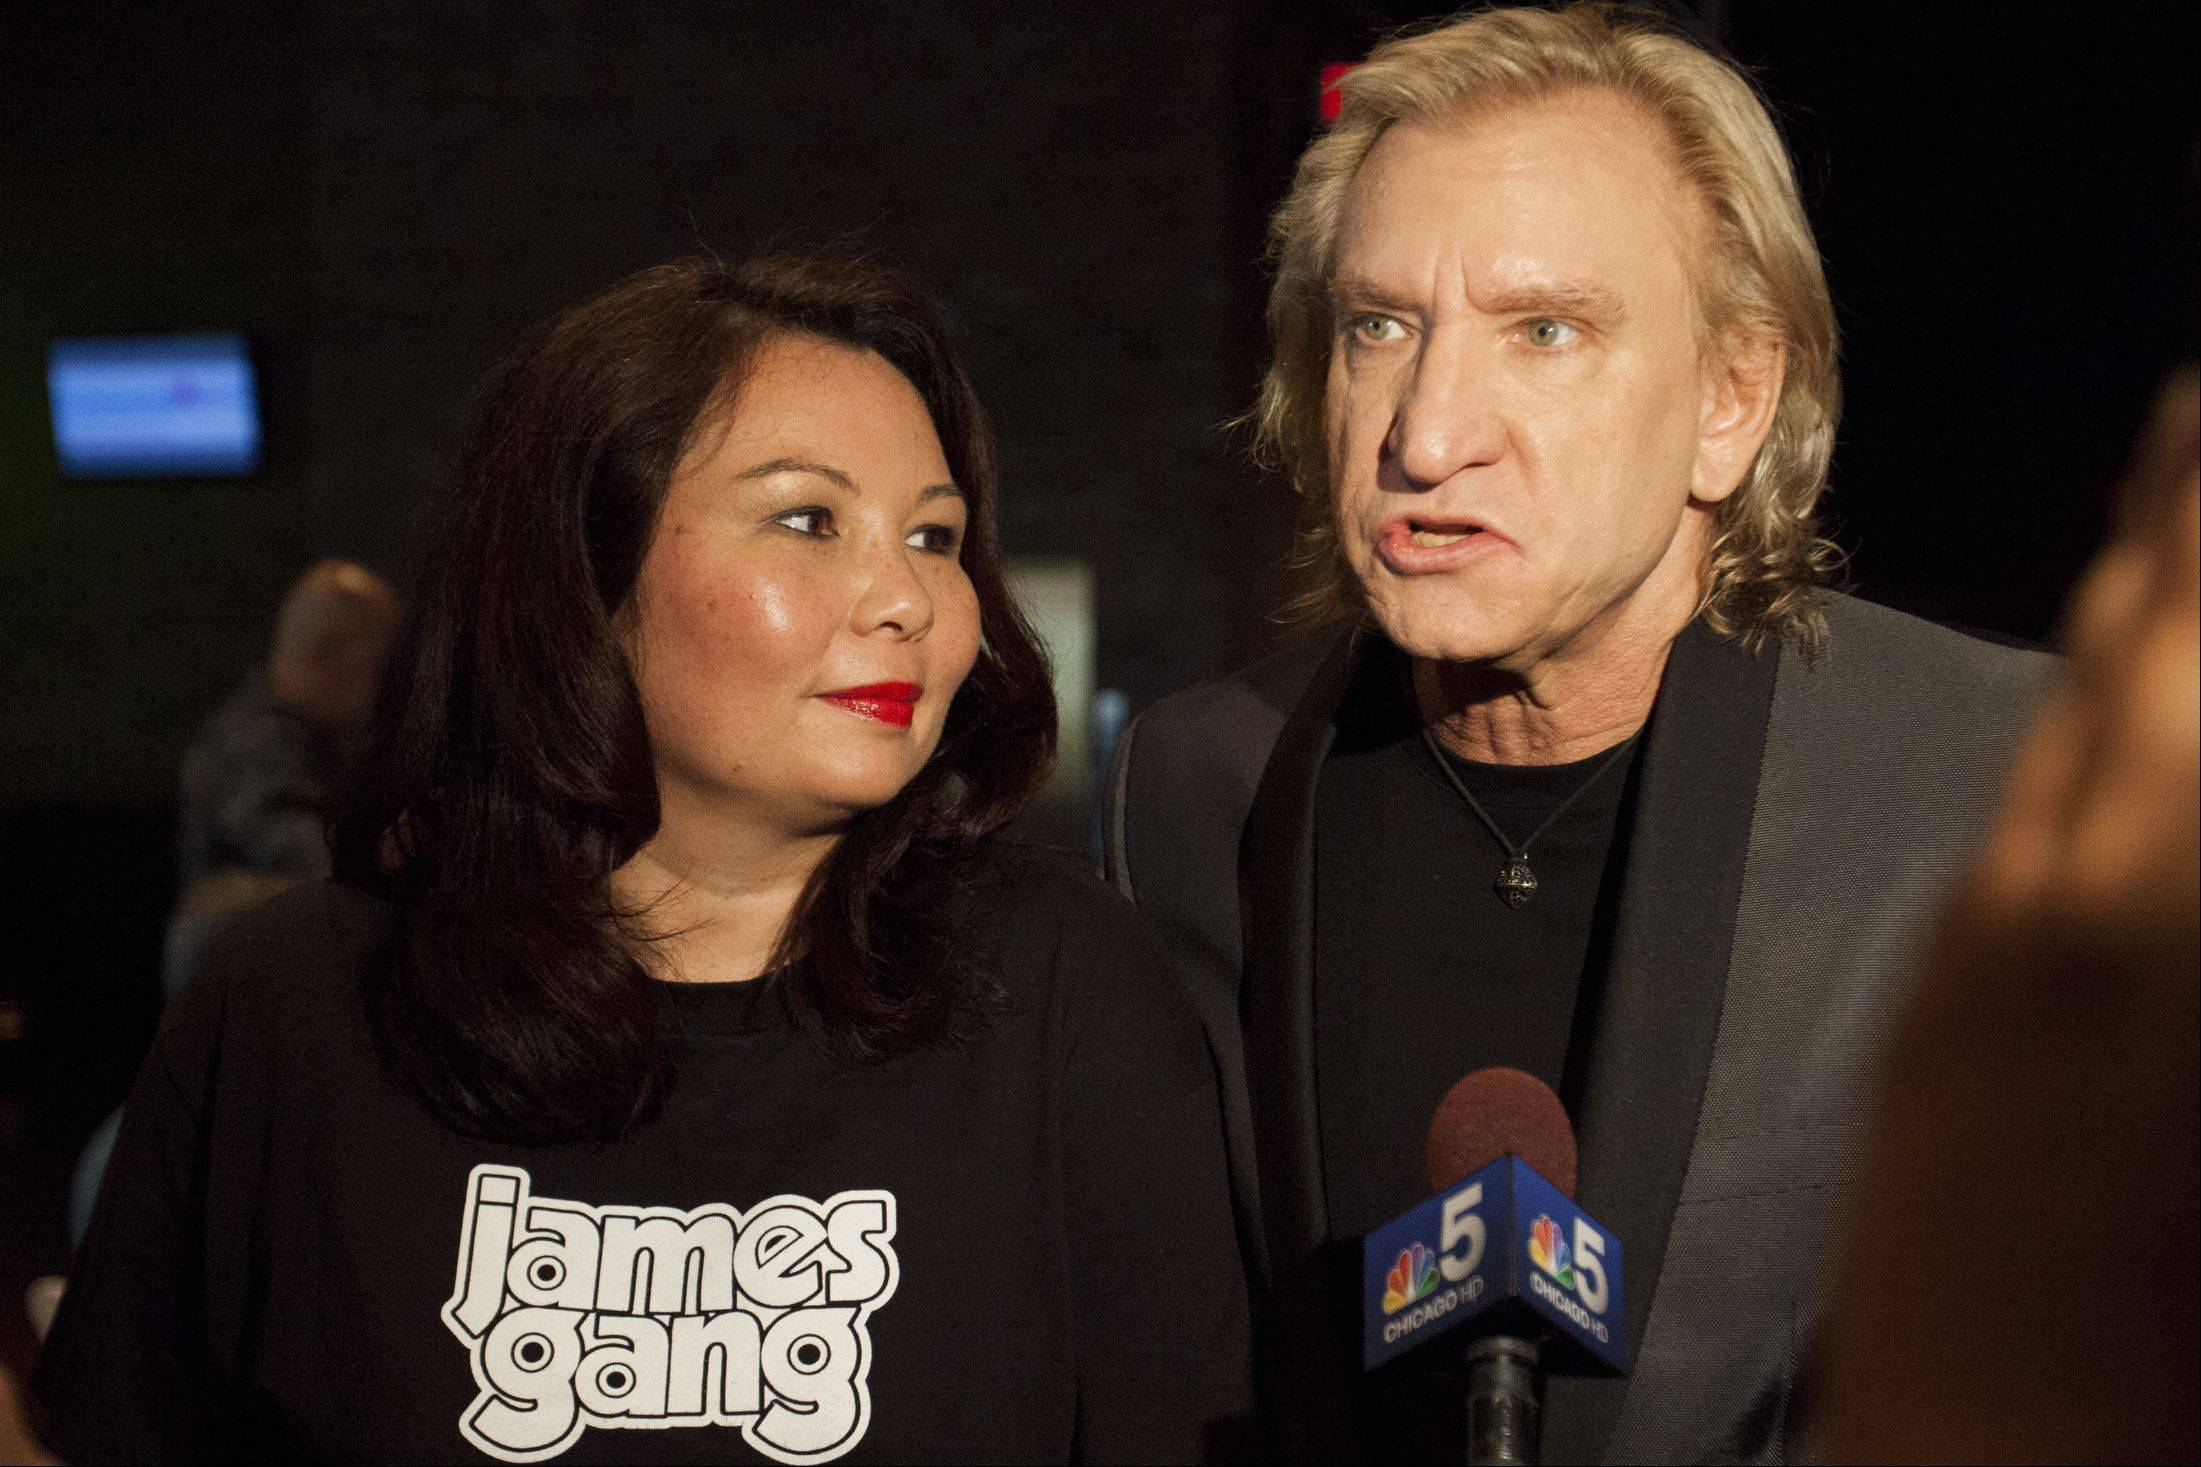 Rocker Joe Walsh talks about his support for Tammy Duckworth for the 8th Congressional District of Illinois during an appearance for her campaign at John Barleycorn in Schaumburg Sunday night.